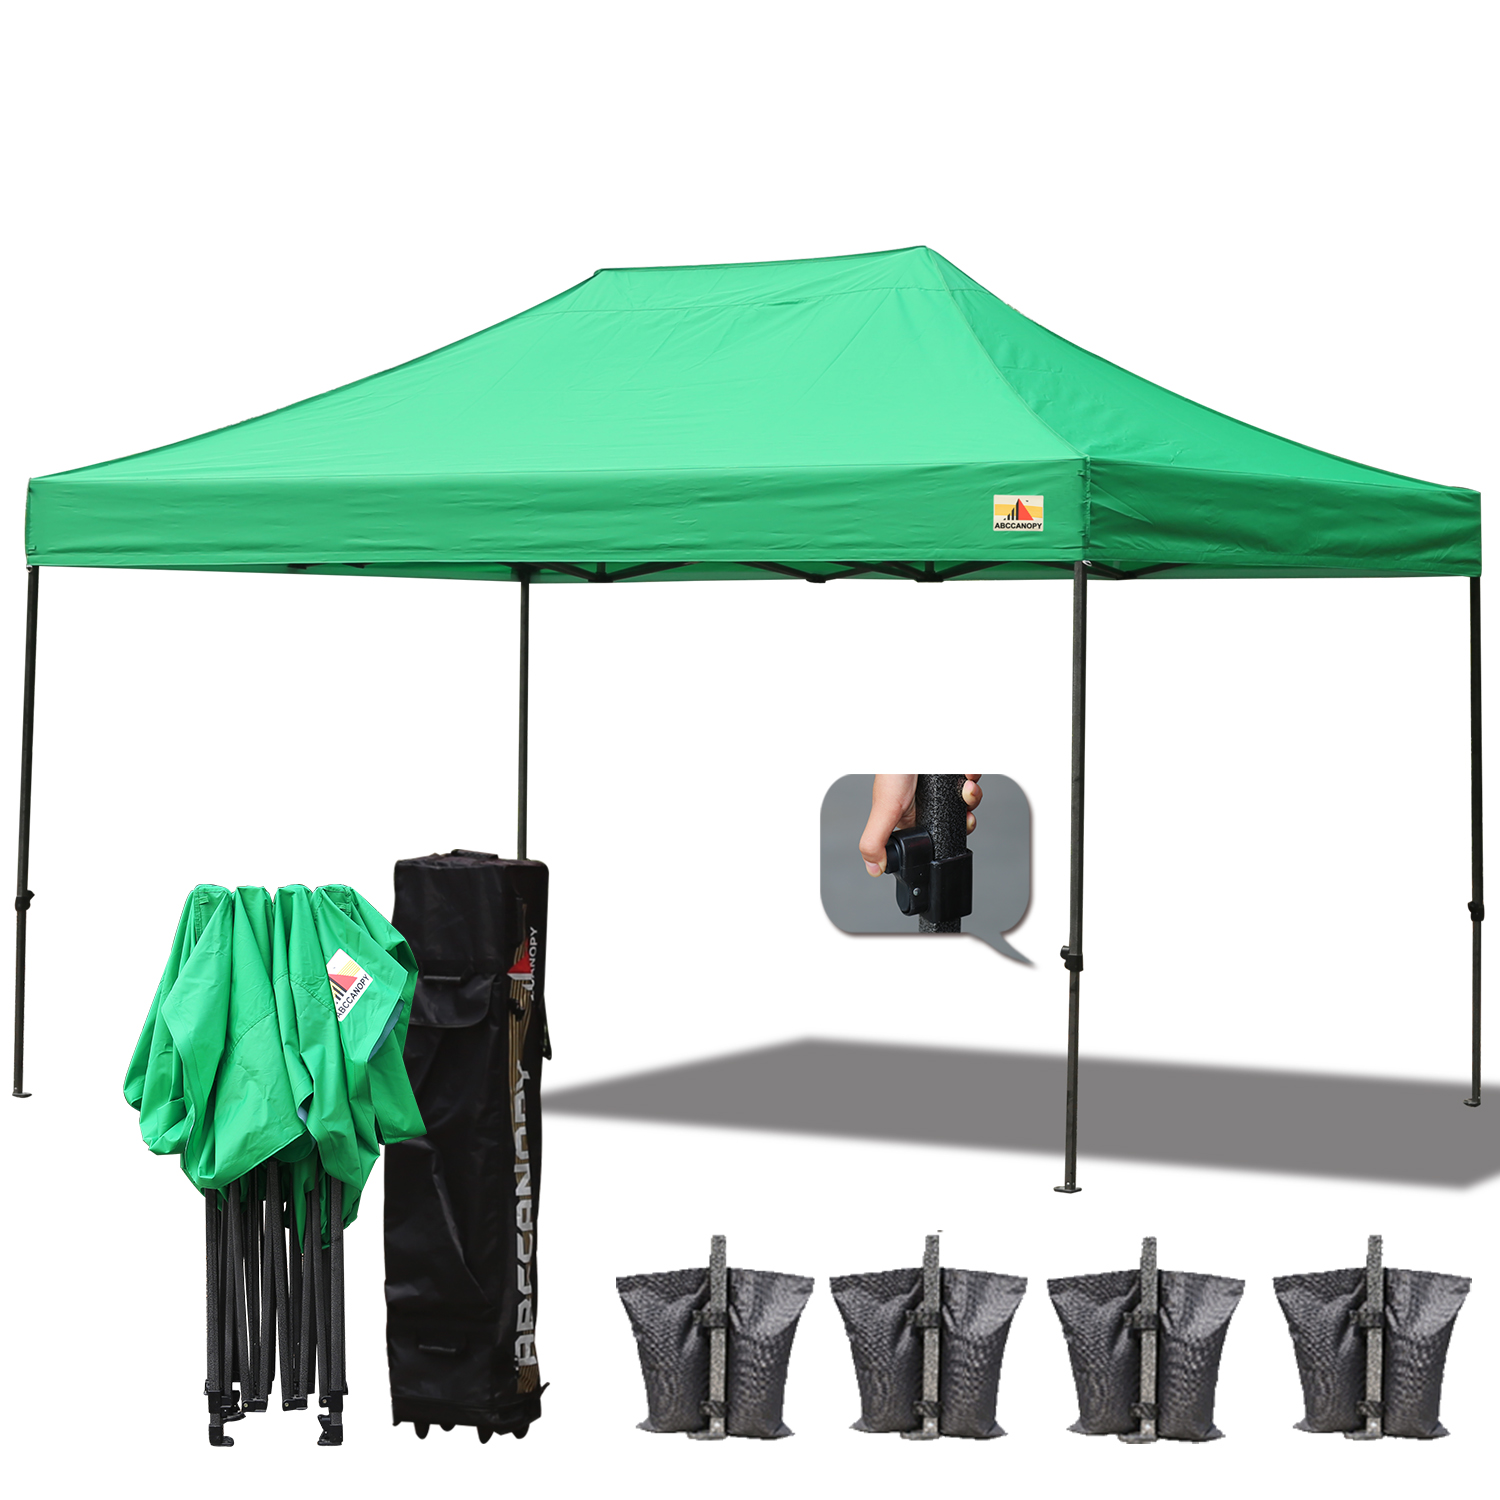 AbcCanopy 3MX4.5M Deluxe Kelly Green Pop Up Canopy With Roller Bag  sc 1 st  Pop Up Tents?Custom Canopies?Pop Up Canopies?Canopy Tents ... & AbcCanopy 3MX4.5M Deluxe Kelly Green Pop Up Canopy With Roller Bag ...